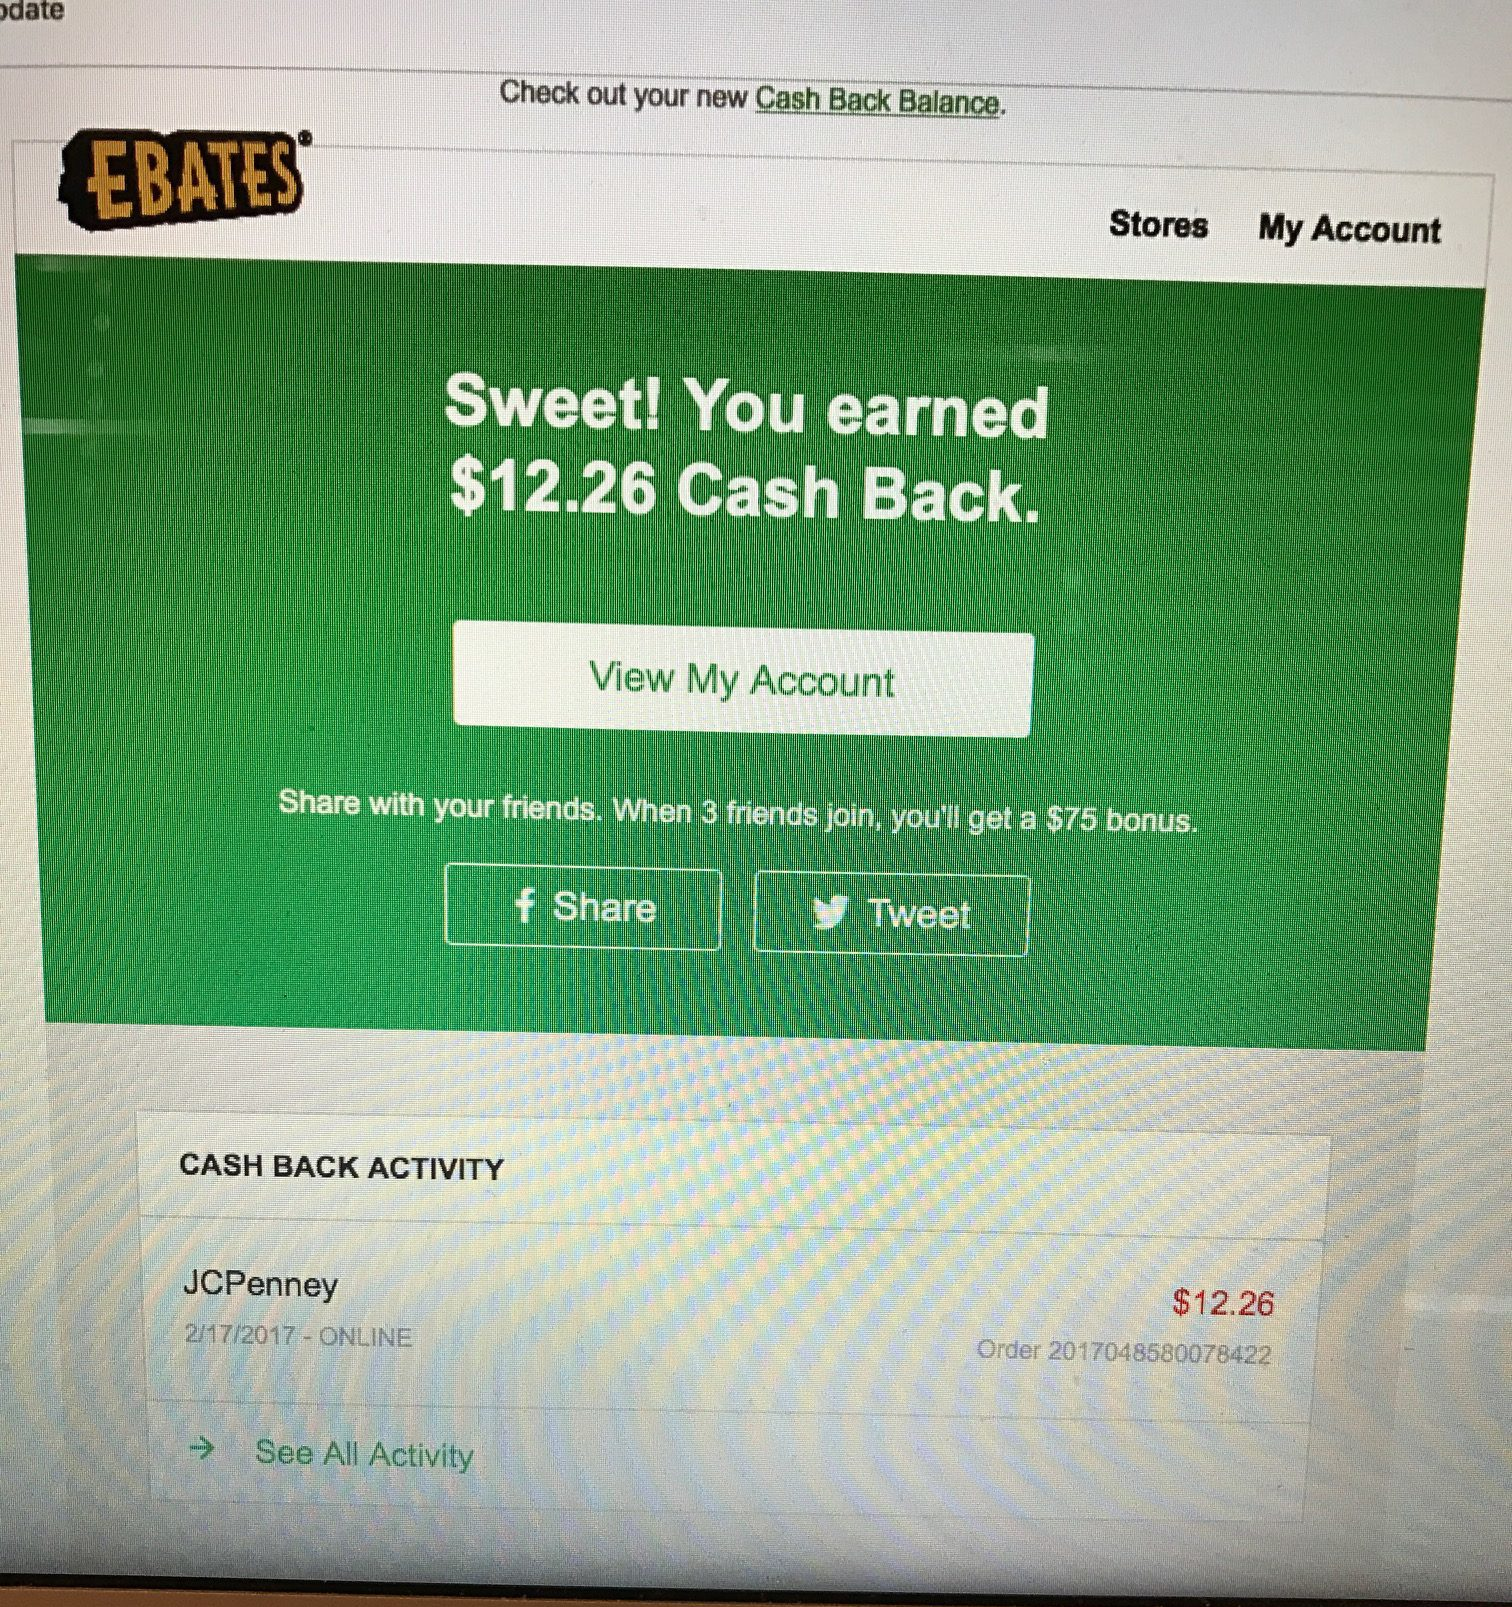 Ebates Email Confirmation